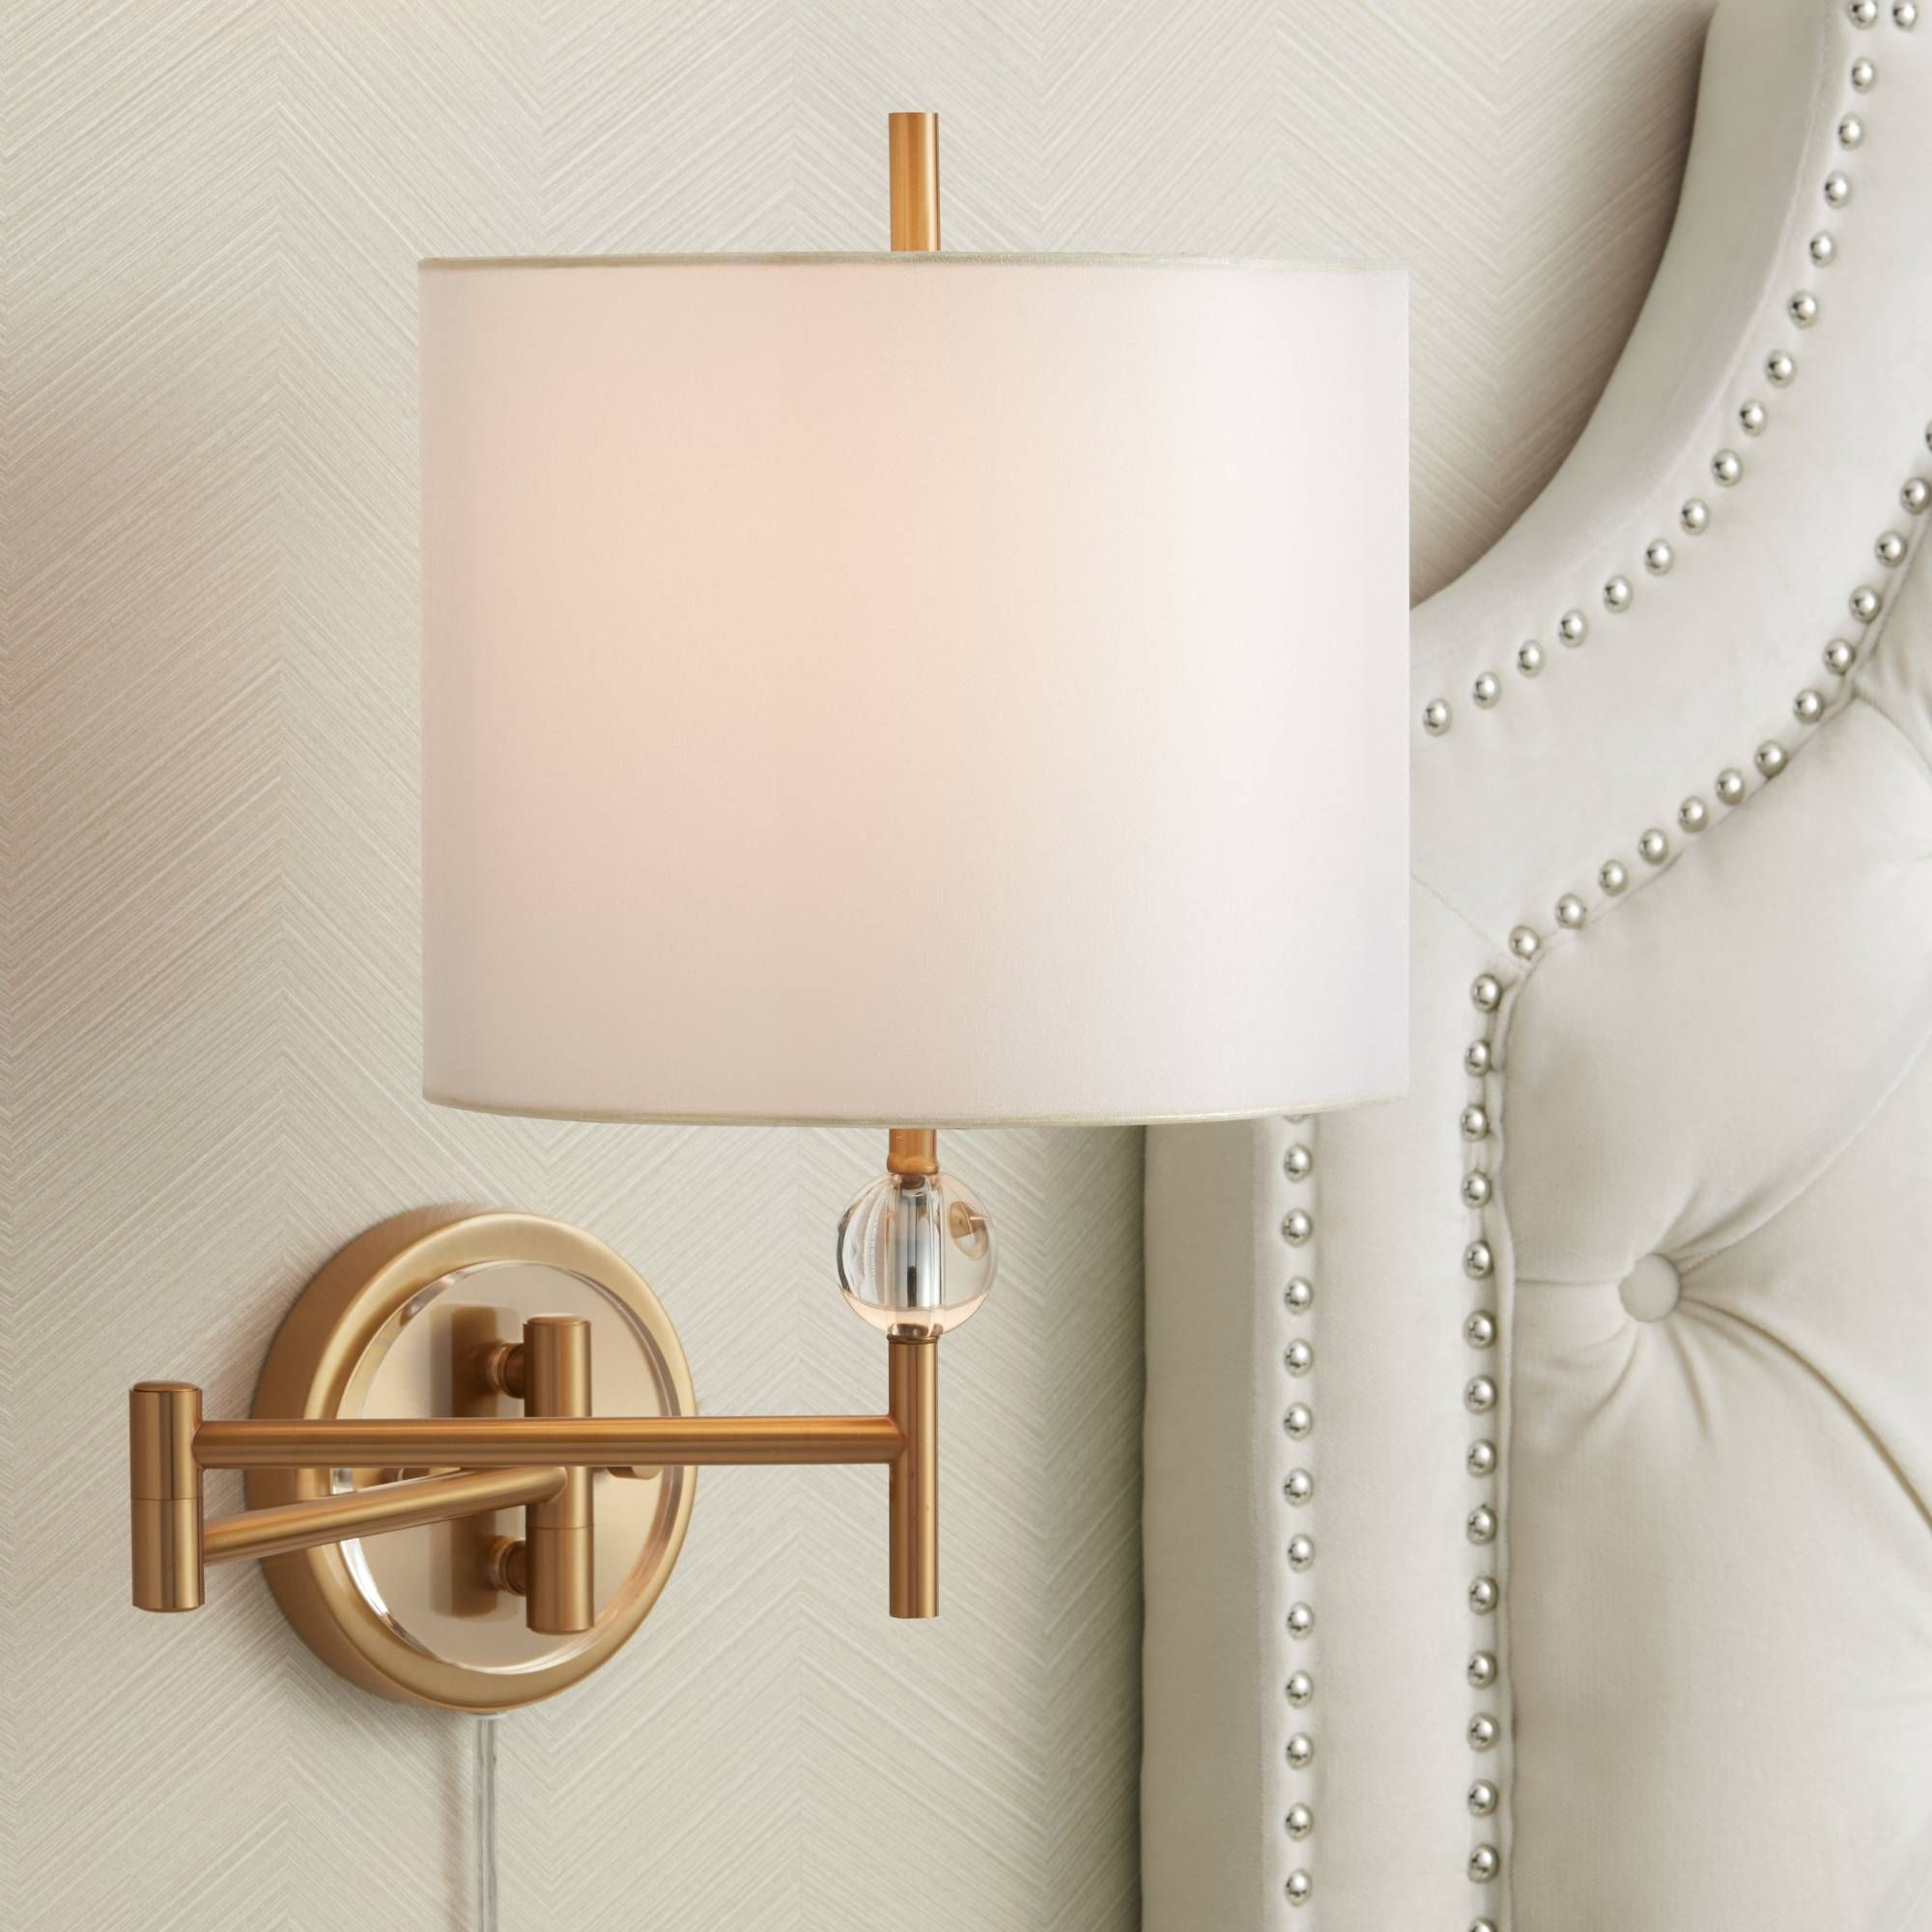 Kohle Brass And Acrylic Ball Swing Arm Plug In Wall Lamp With Cord Cover 1f058 Lamps Plus Swing Arm Wall Lamps Plug In Wall Lamp Wall Lamps With Cord